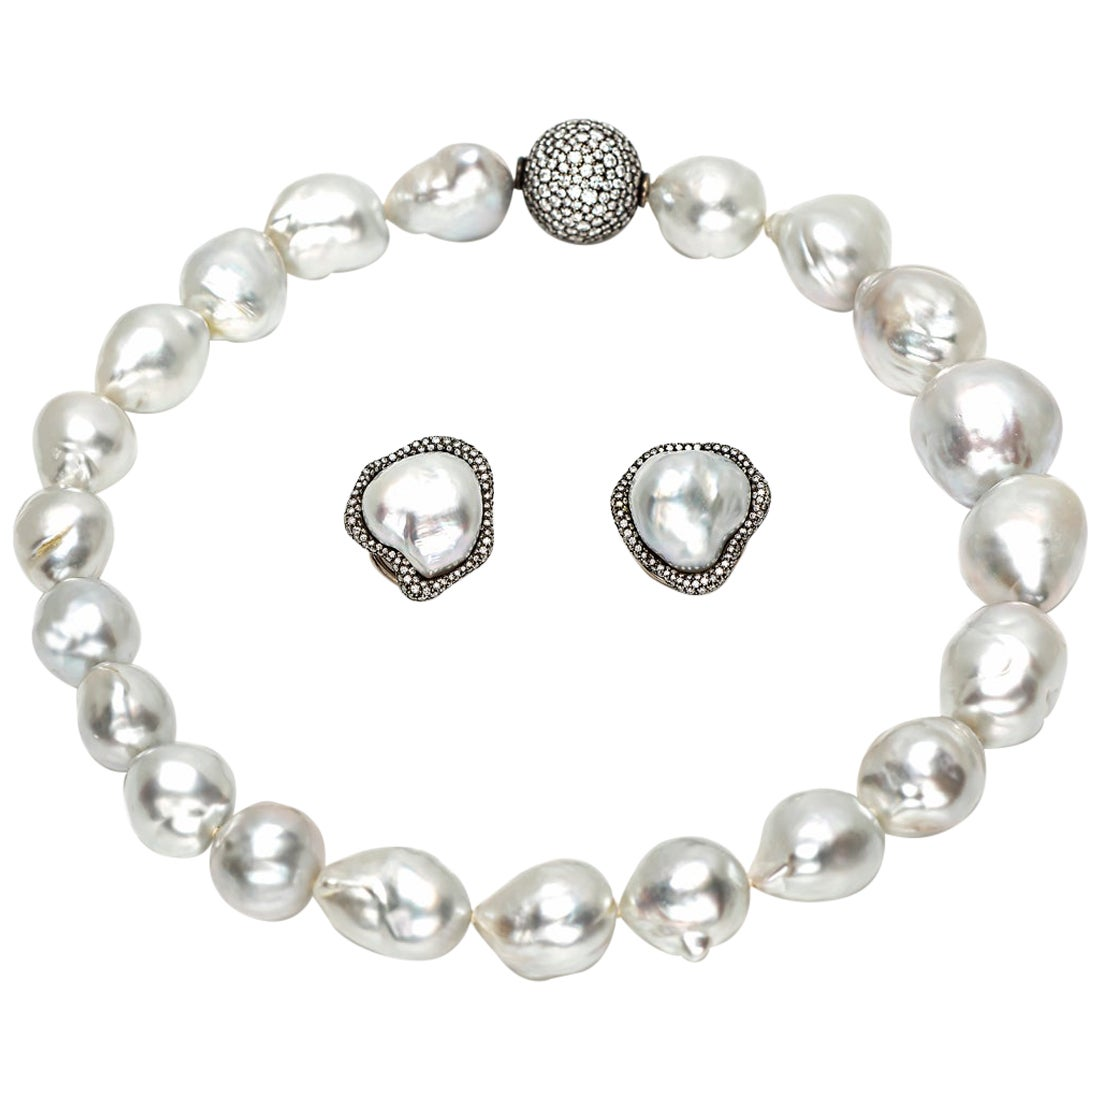 Diamond and South Sea Pearl Necklace and Earrings